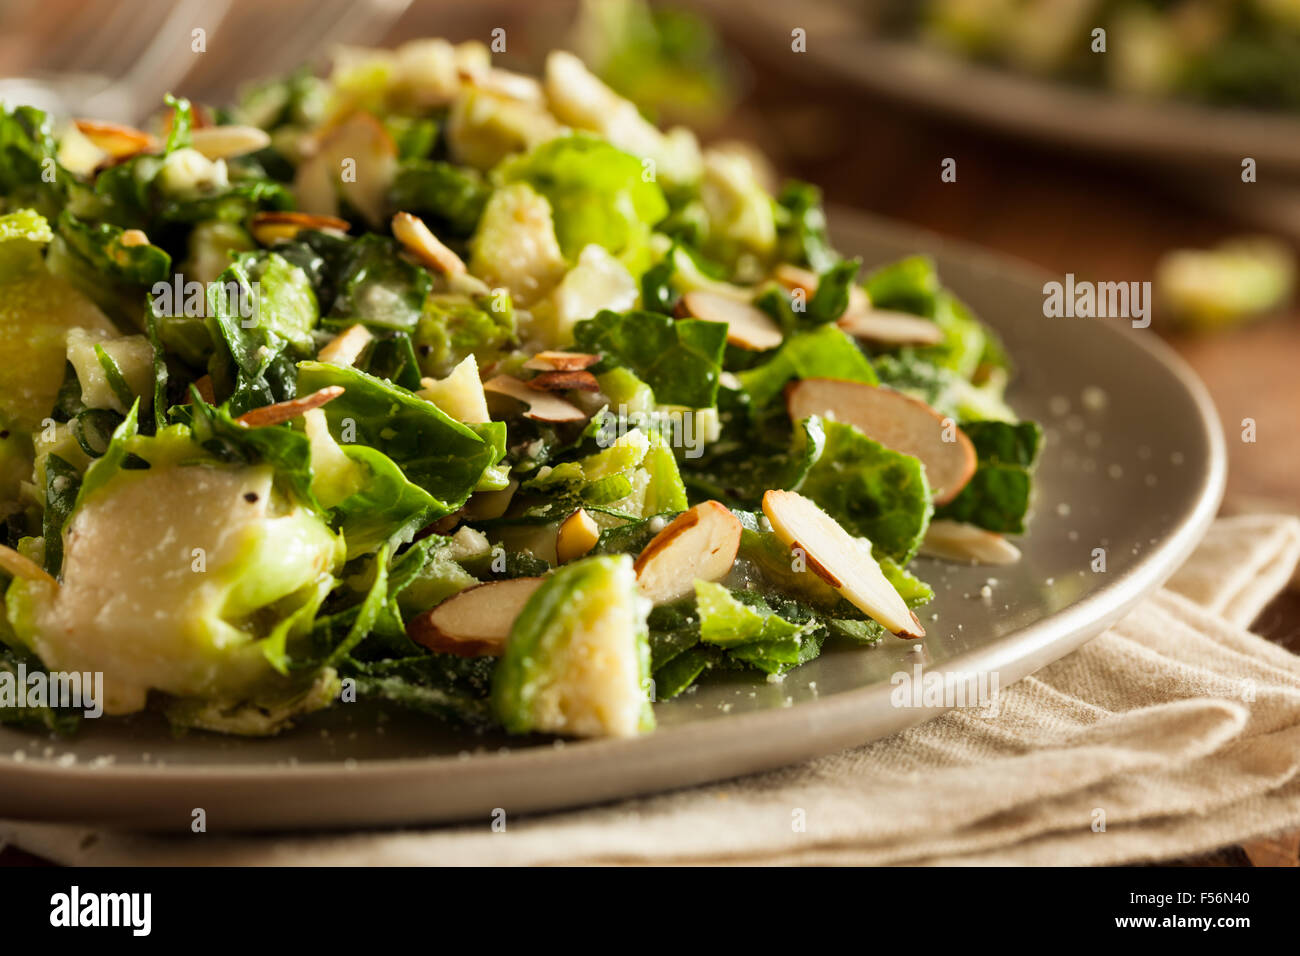 Kale and Brussel Sprout Salad with Almons and Lemon Dressing - Stock Image